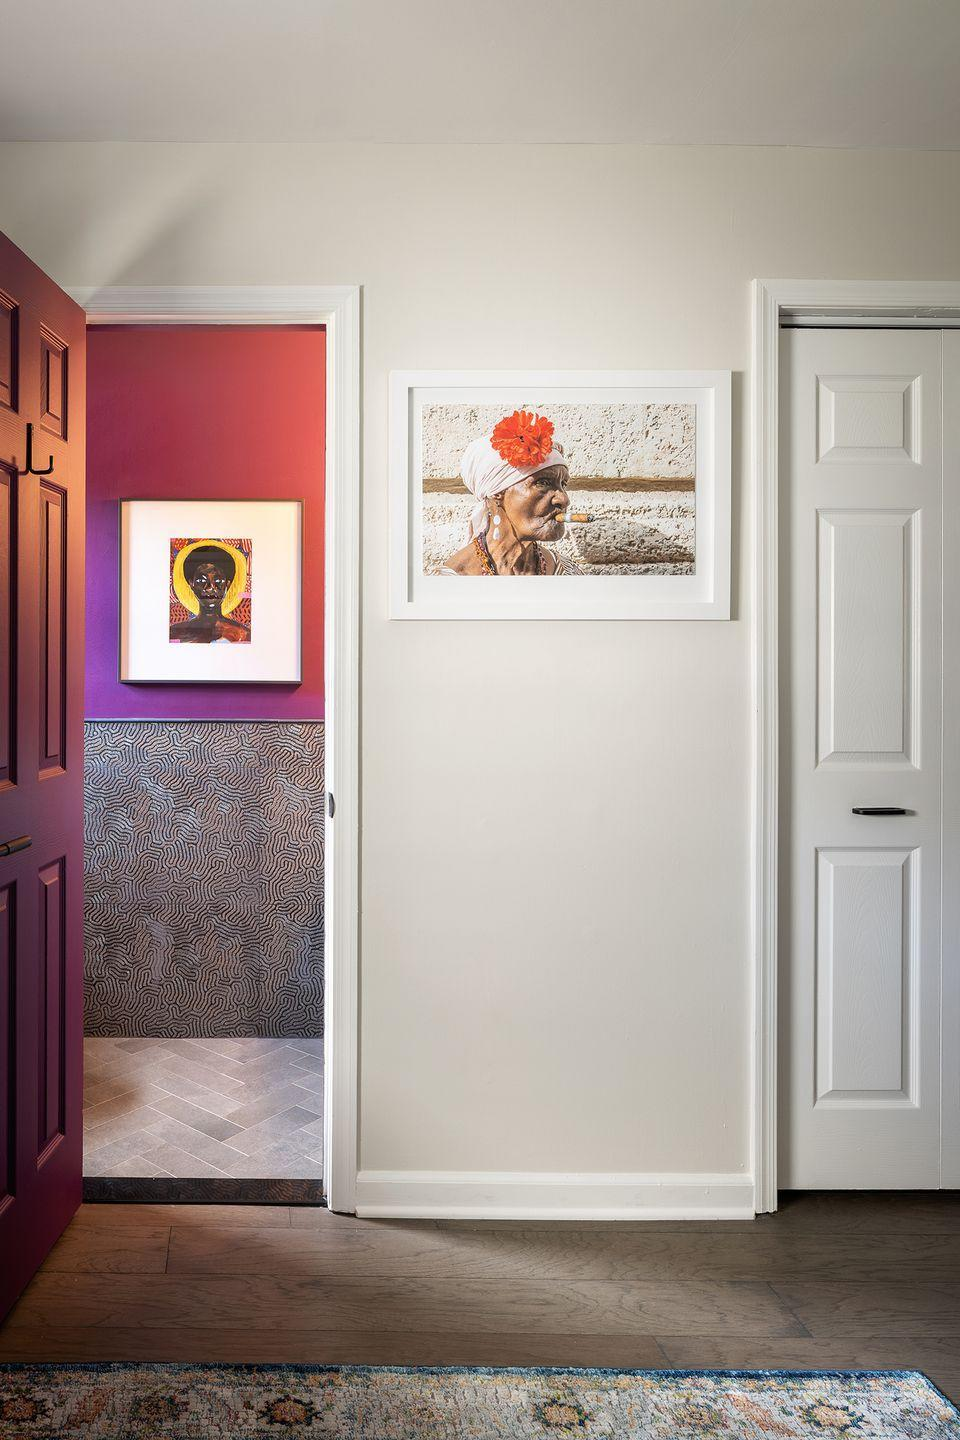 "<p>""We'll see darker and moodier colors in rooms juxtaposed with lighter colors in adjacent rooms. This provides depth, visual interest, and a clear definition of the spaces to make each room feel more special."" — <a href=""https://www.bethdianasmith.com/"" rel=""nofollow noopener"" target=""_blank"" data-ylk=""slk:Beth Diana Smith"" class=""link rapid-noclick-resp"">Beth Diana Smith</a></p>"